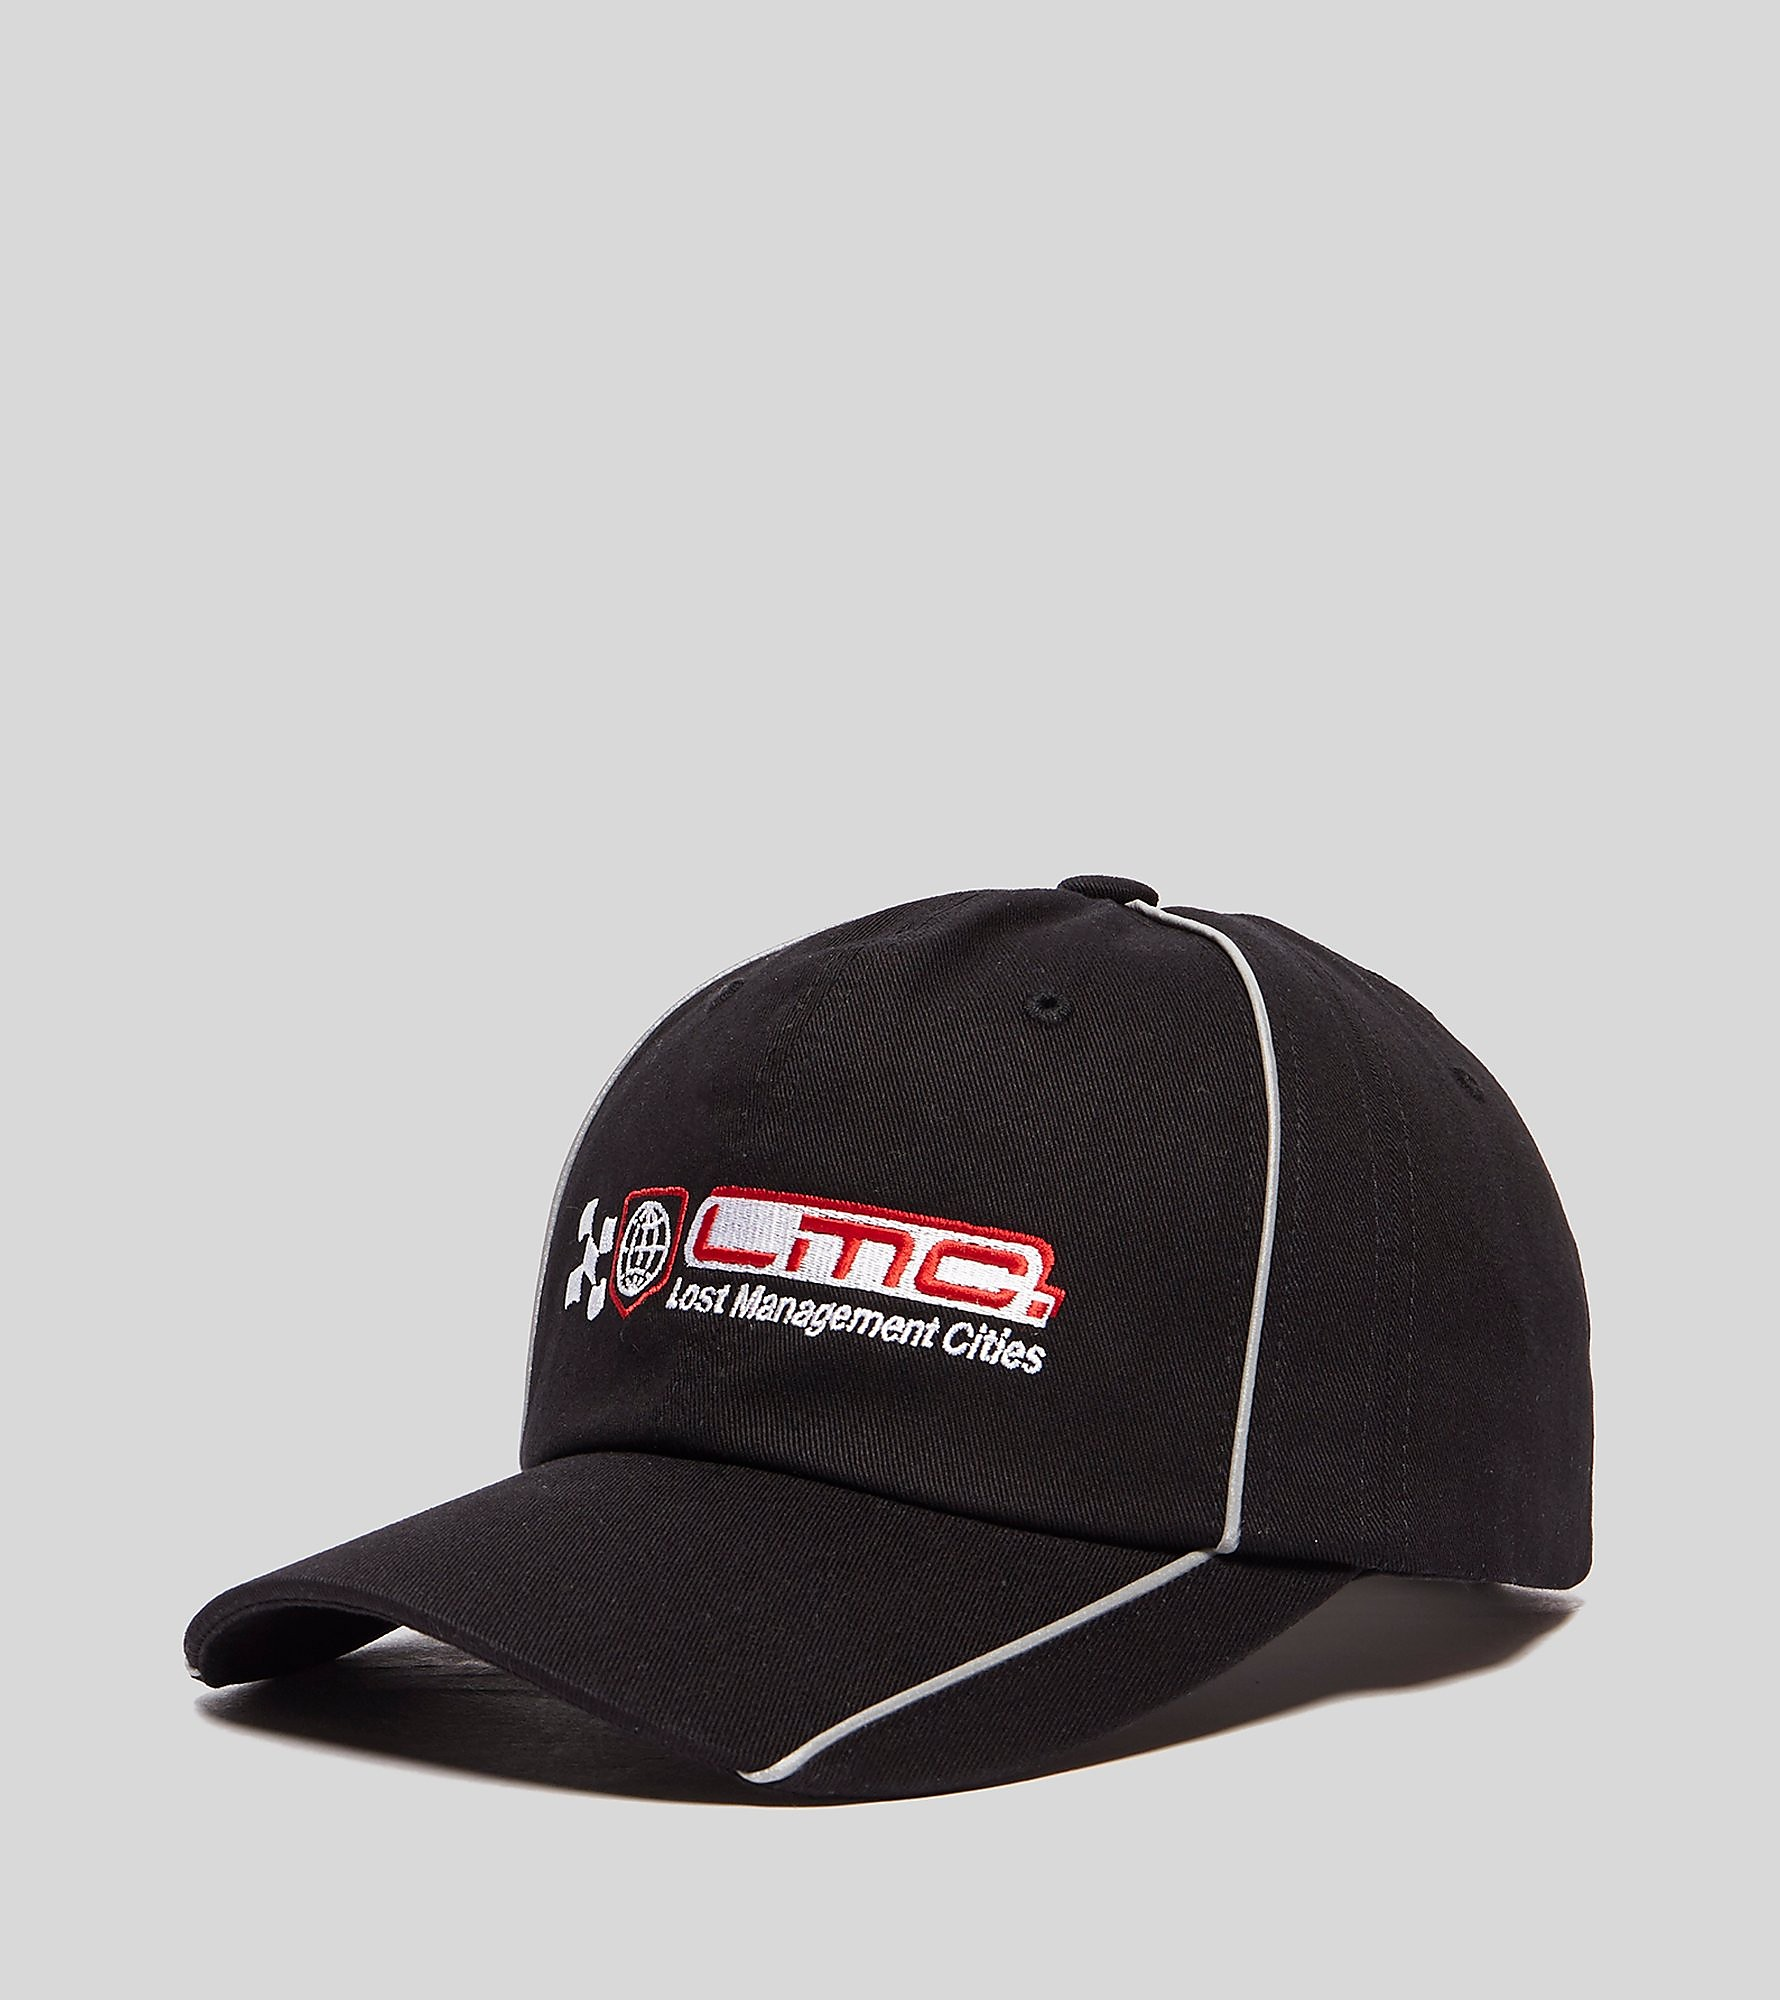 Lost Management Cities Casquette Racing